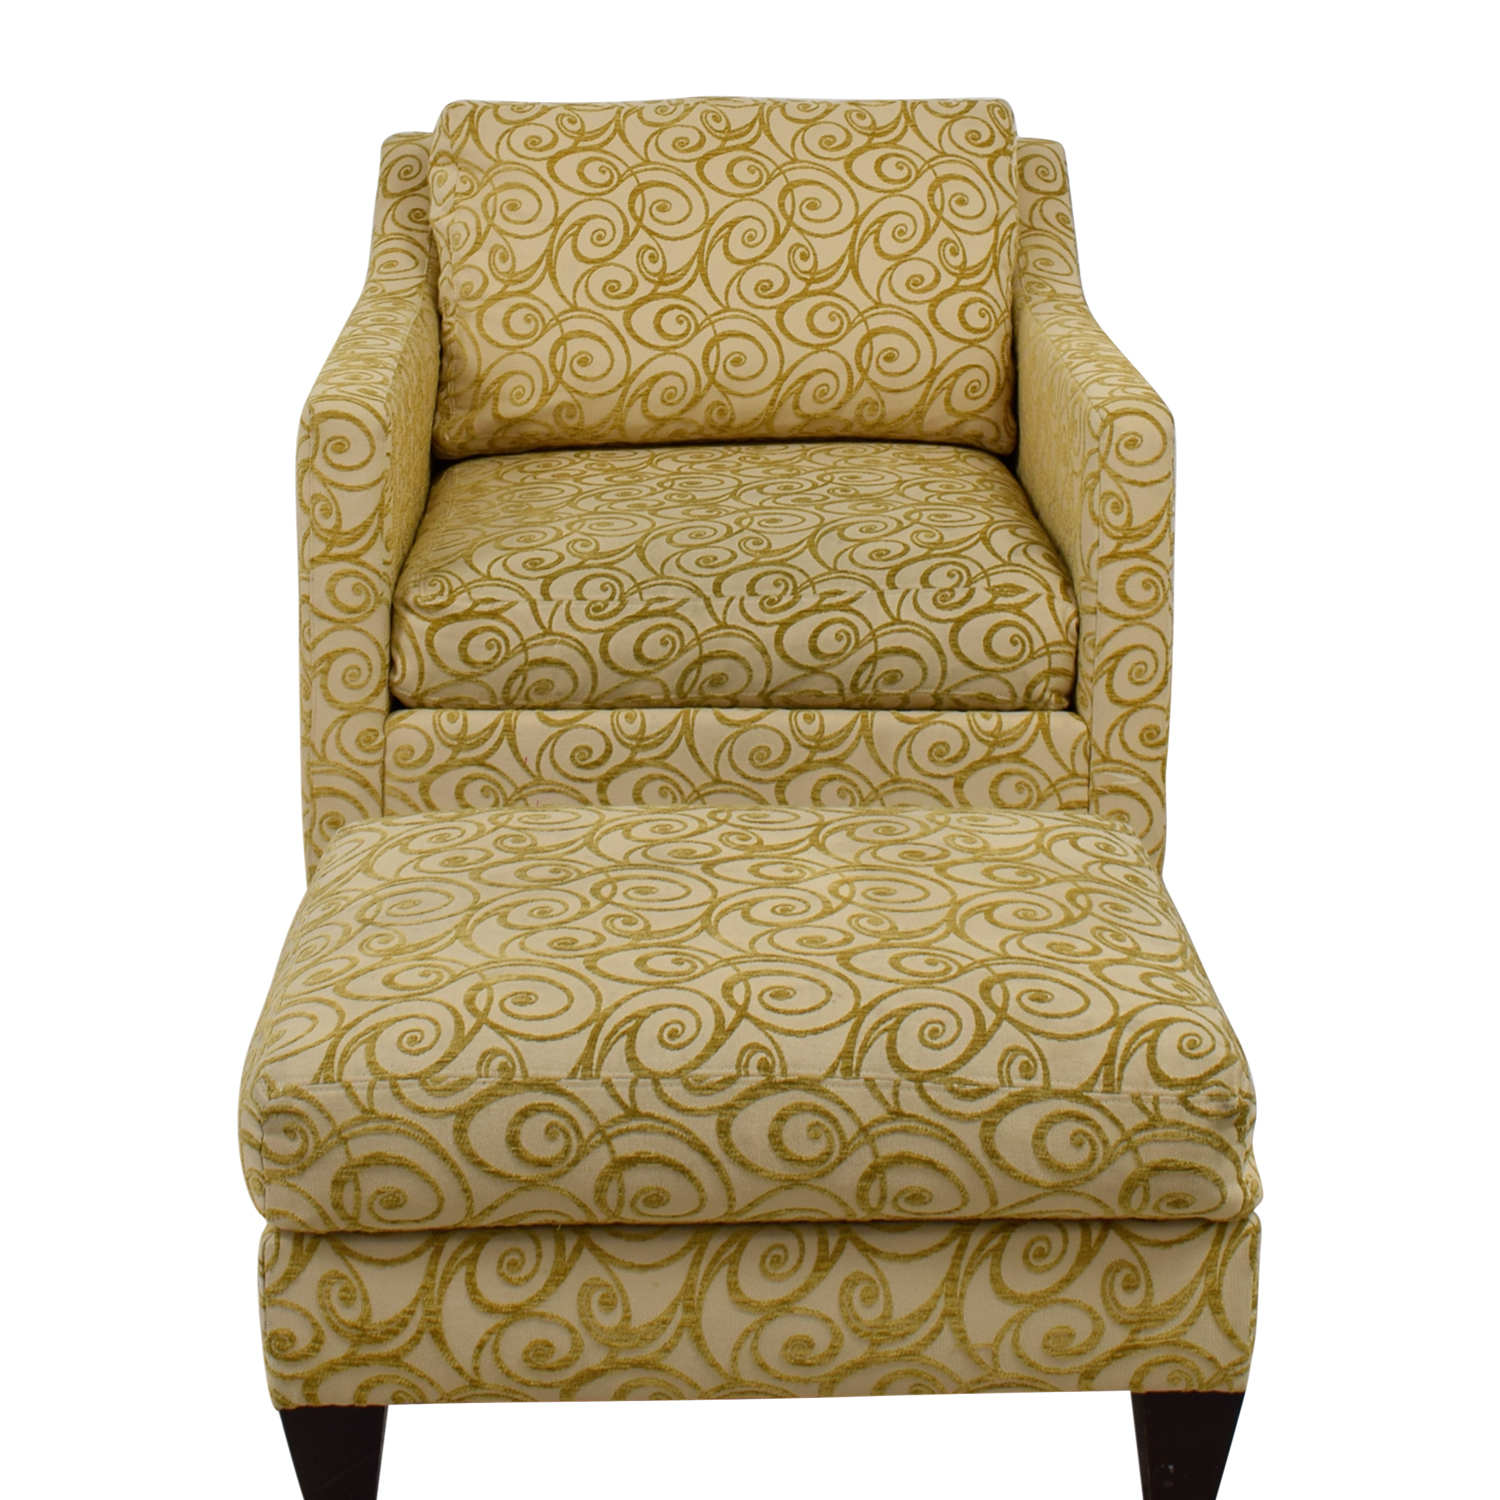 Ethan Allen Ethan Allen Beige and Gold Monterey Chair and Ottoman on sale